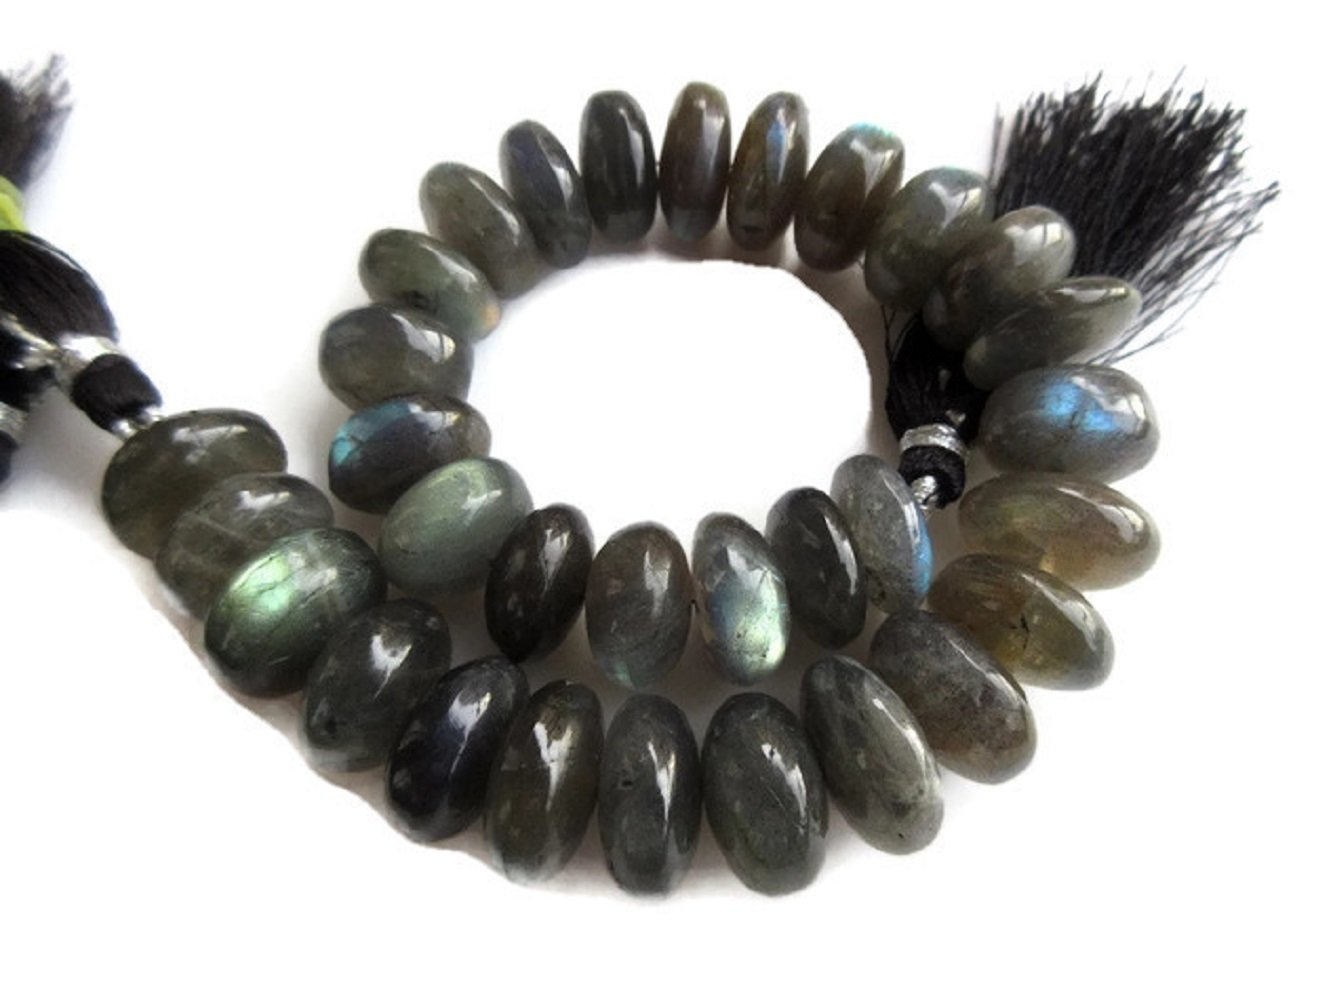 AAA Natural Labradorite Smooth Rondelle Beads, 10mm to 12mm Beads, Labradorite Jewelry, GDS959 (9 Inch)